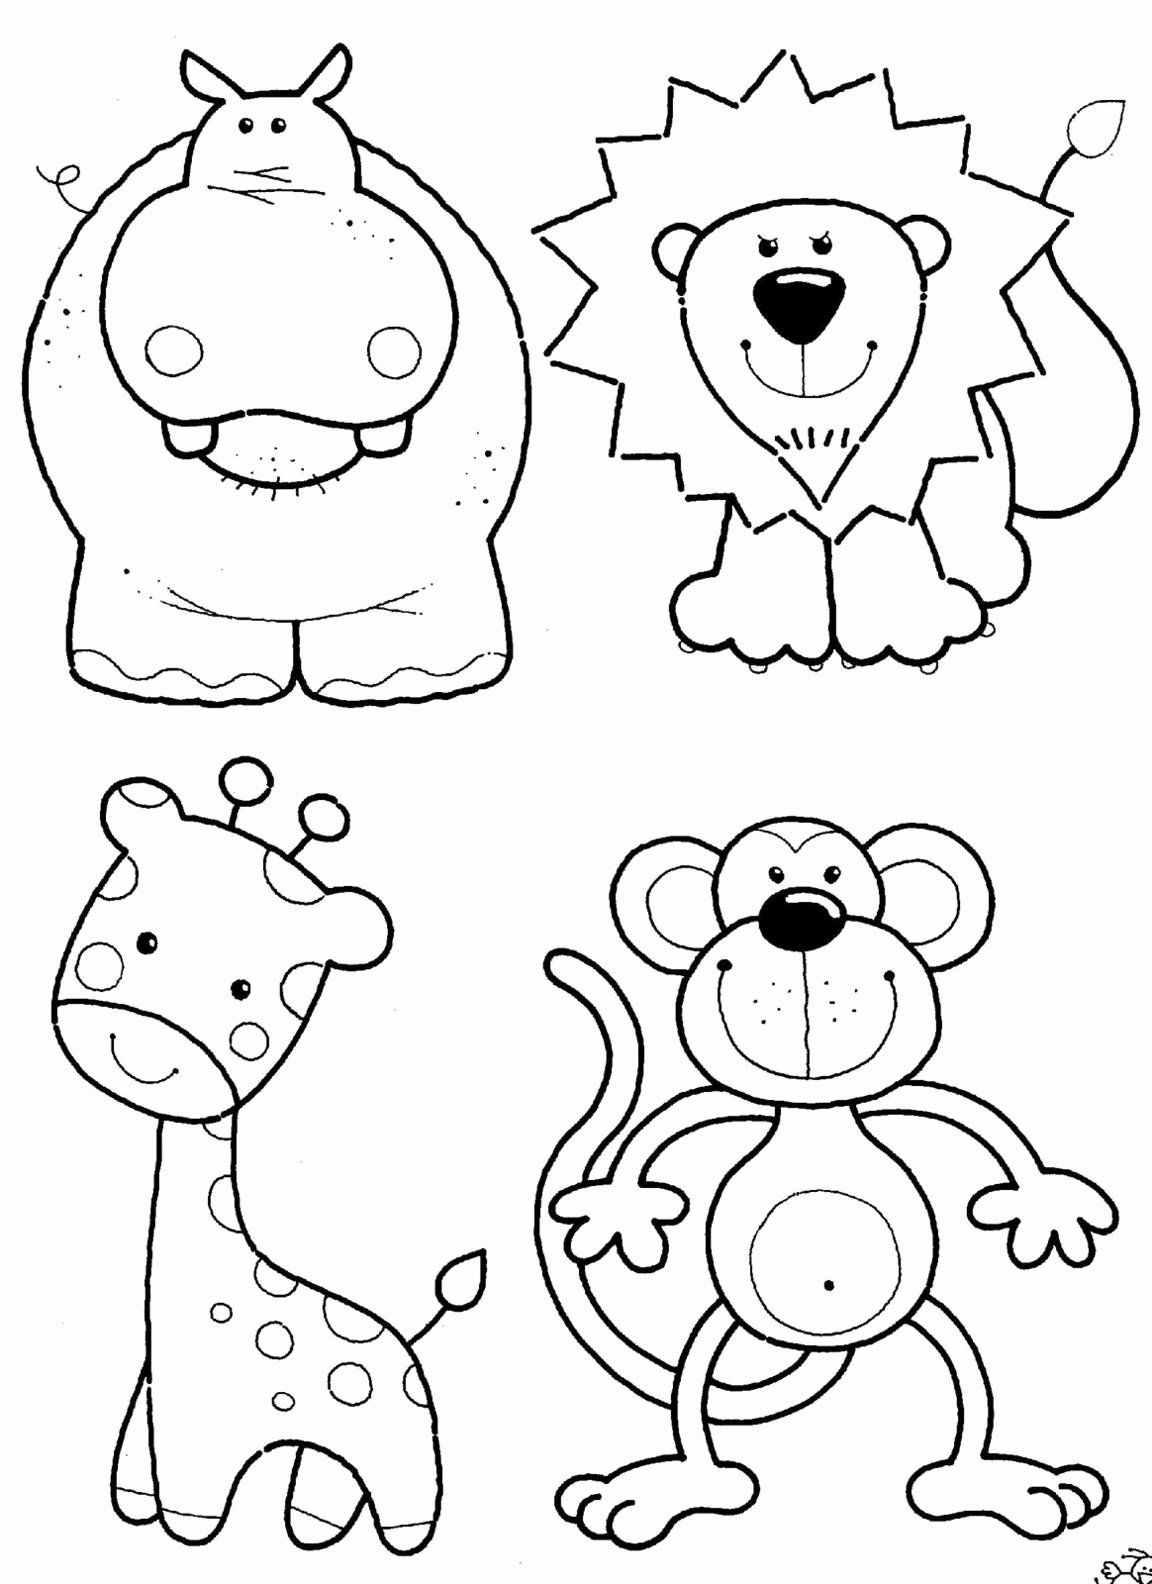 Printable Zoo Animal Coloring Pages In 2020 Zoo Coloring Pages